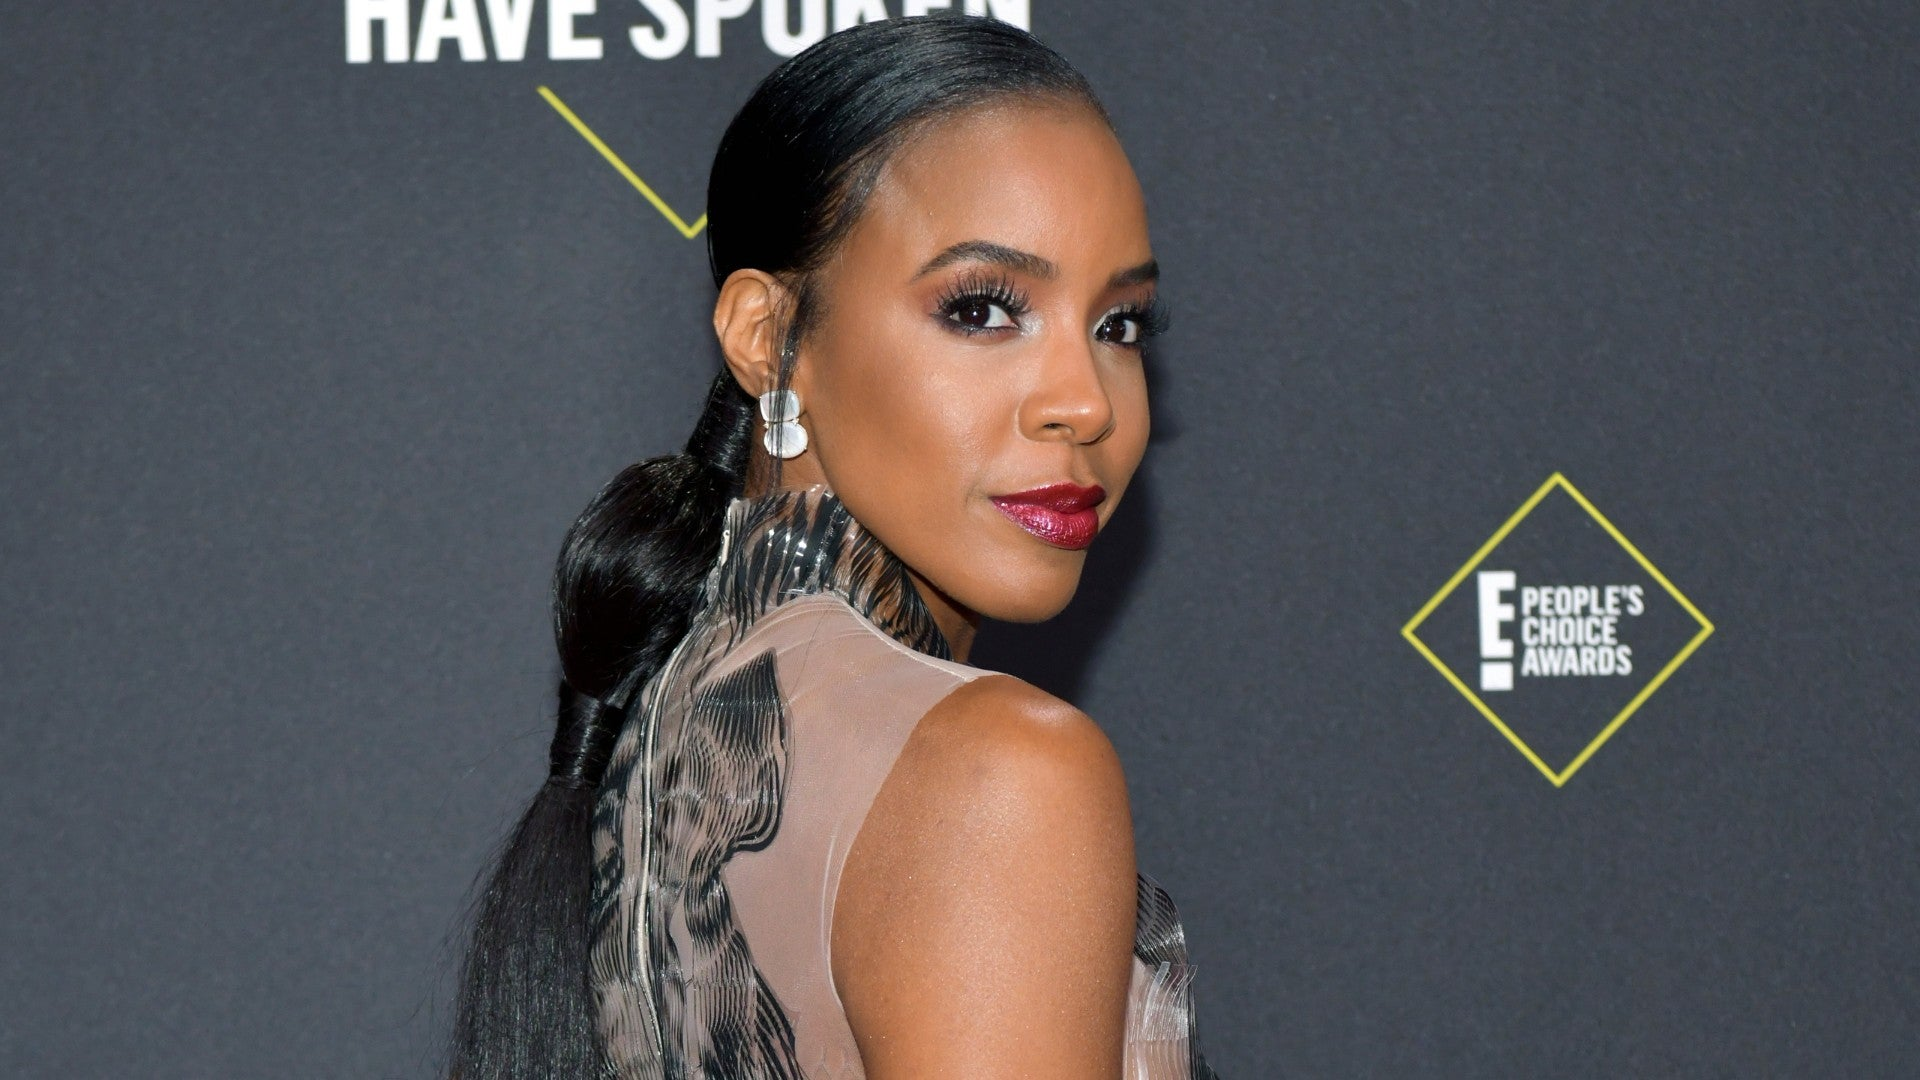 Red Carpet Beauty From The E! People's Choice Awards